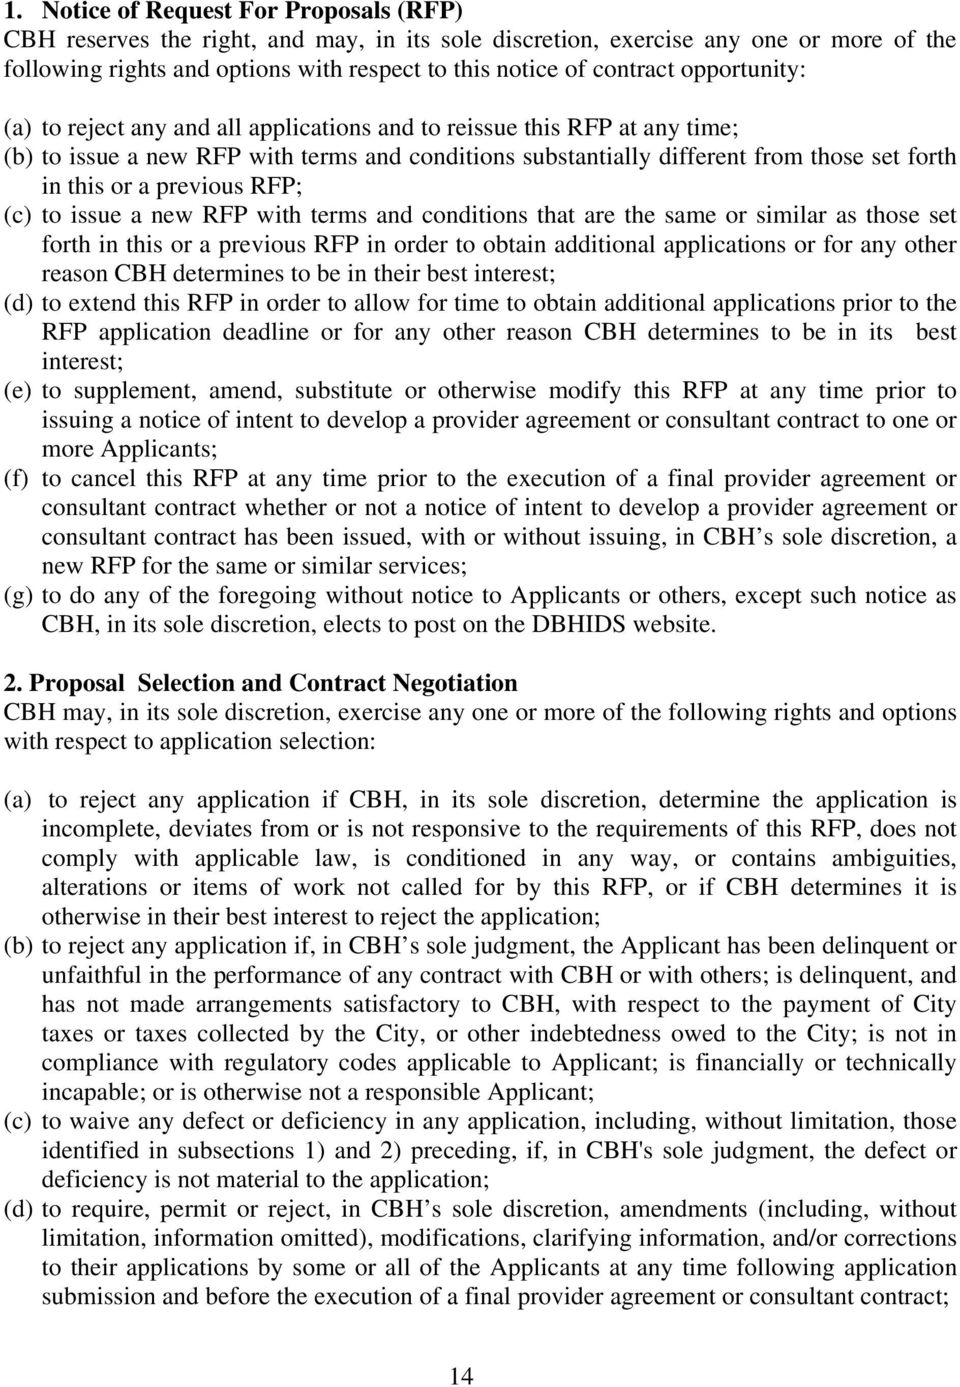 previous RFP; (c) to issue a new RFP with terms and conditions that are the same or similar as those set forth in this or a previous RFP in order to obtain additional applications or for any other